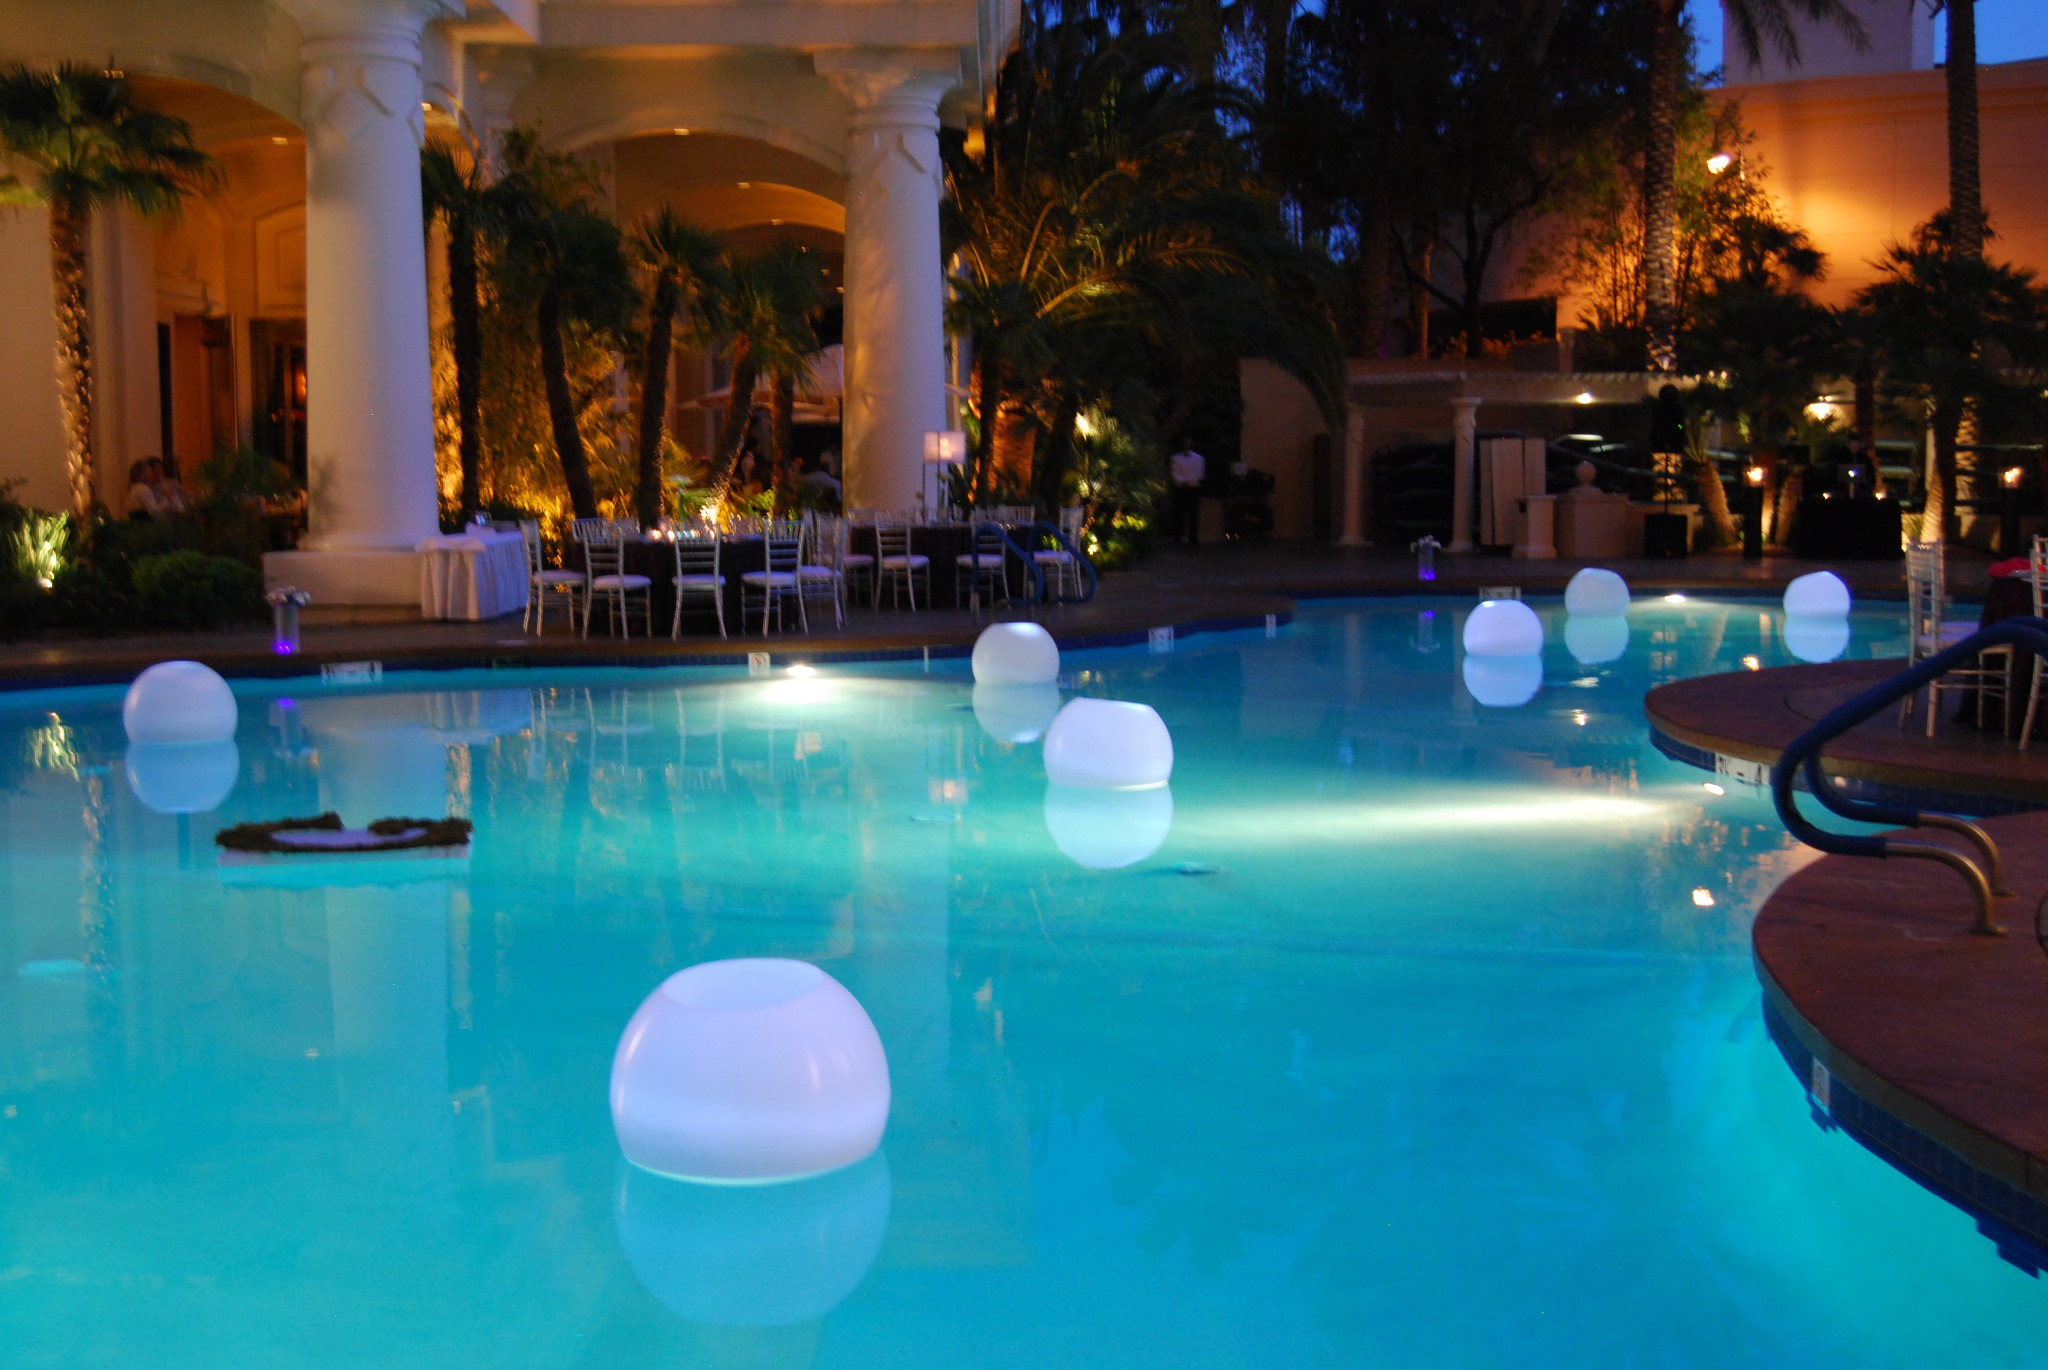 @FSLasVegas #luxbride pool side in Las Vegas what a nice area to have a reception at with some pool orbs that light up http://t.co/kQx7n15A